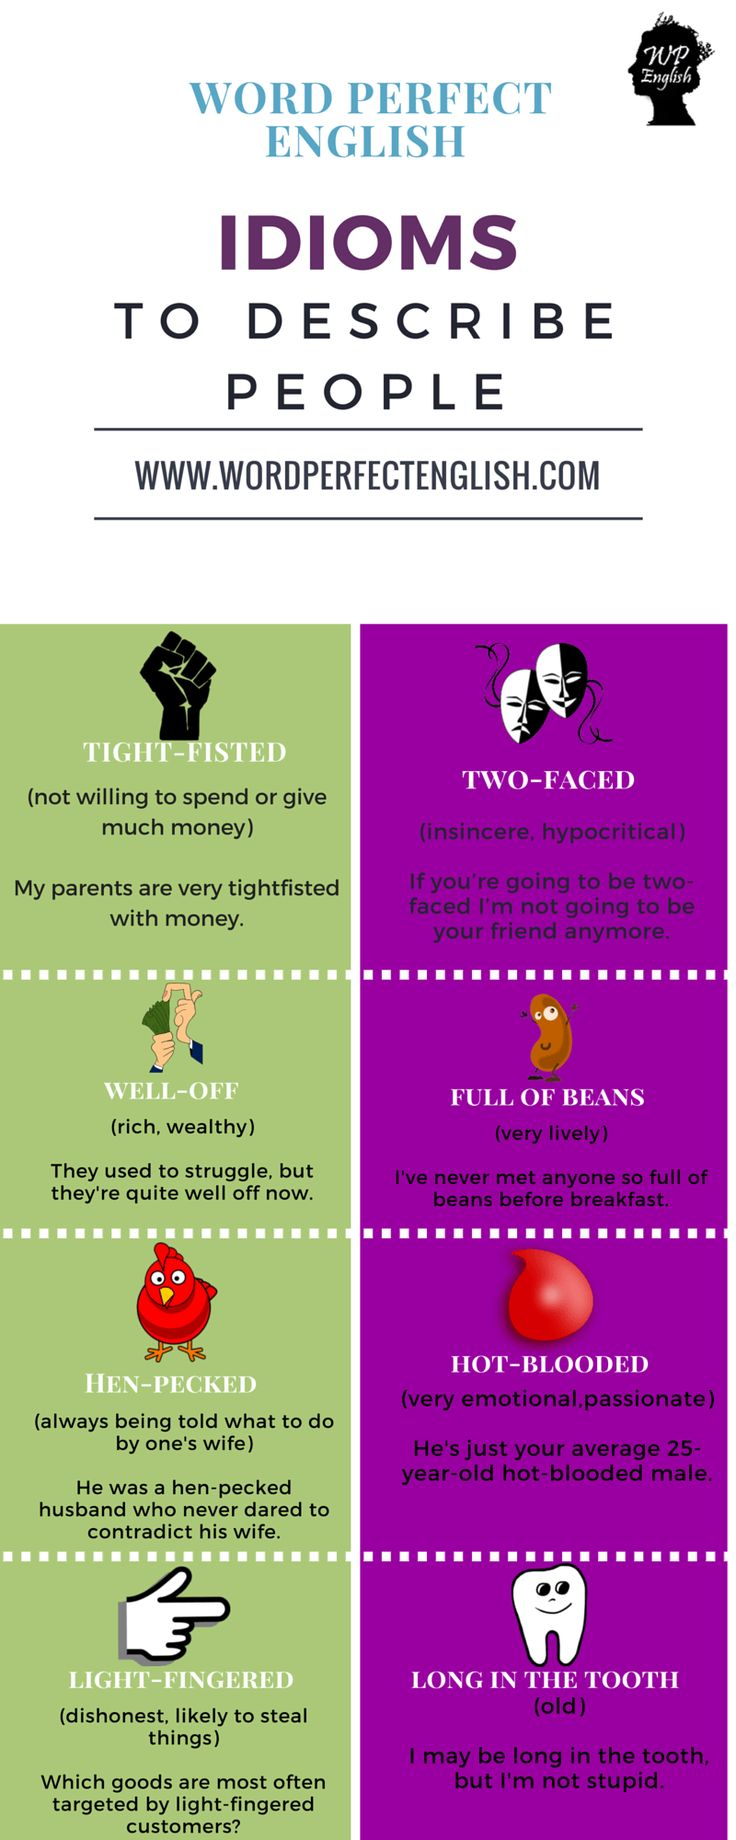 Idioms to Describe People 2/2